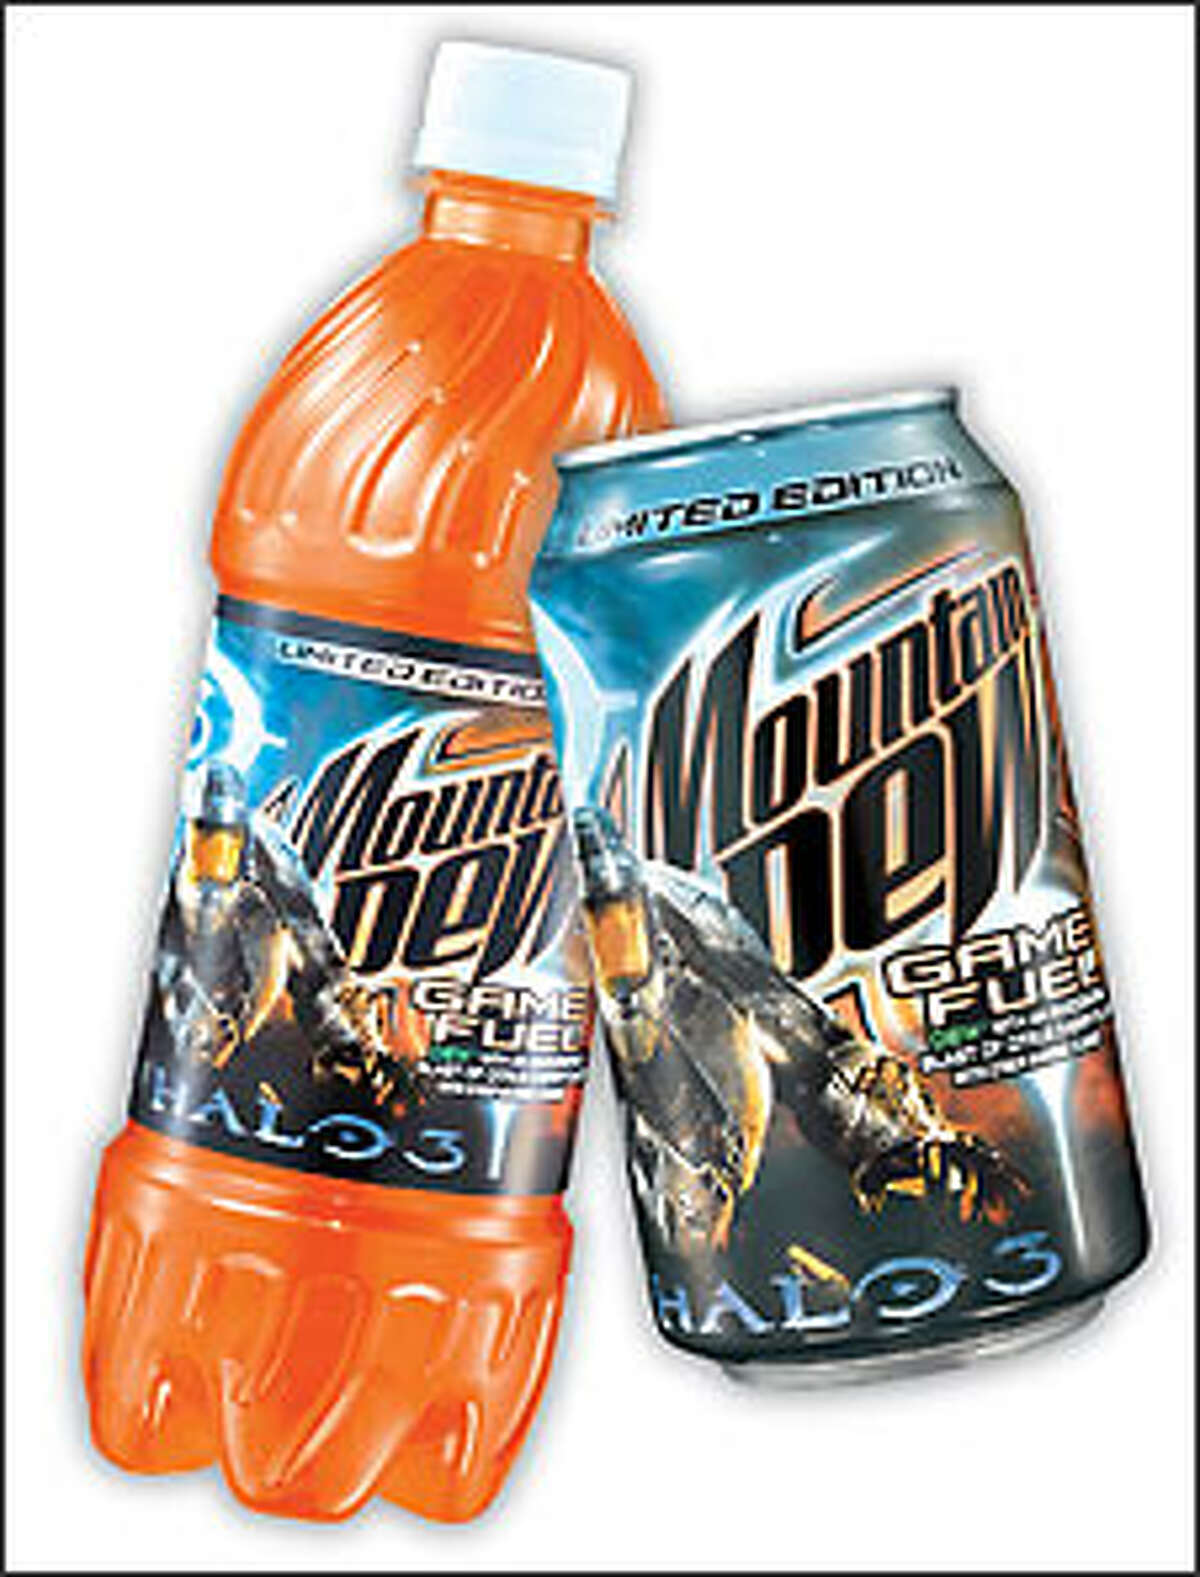 Mountain Dew will have a special